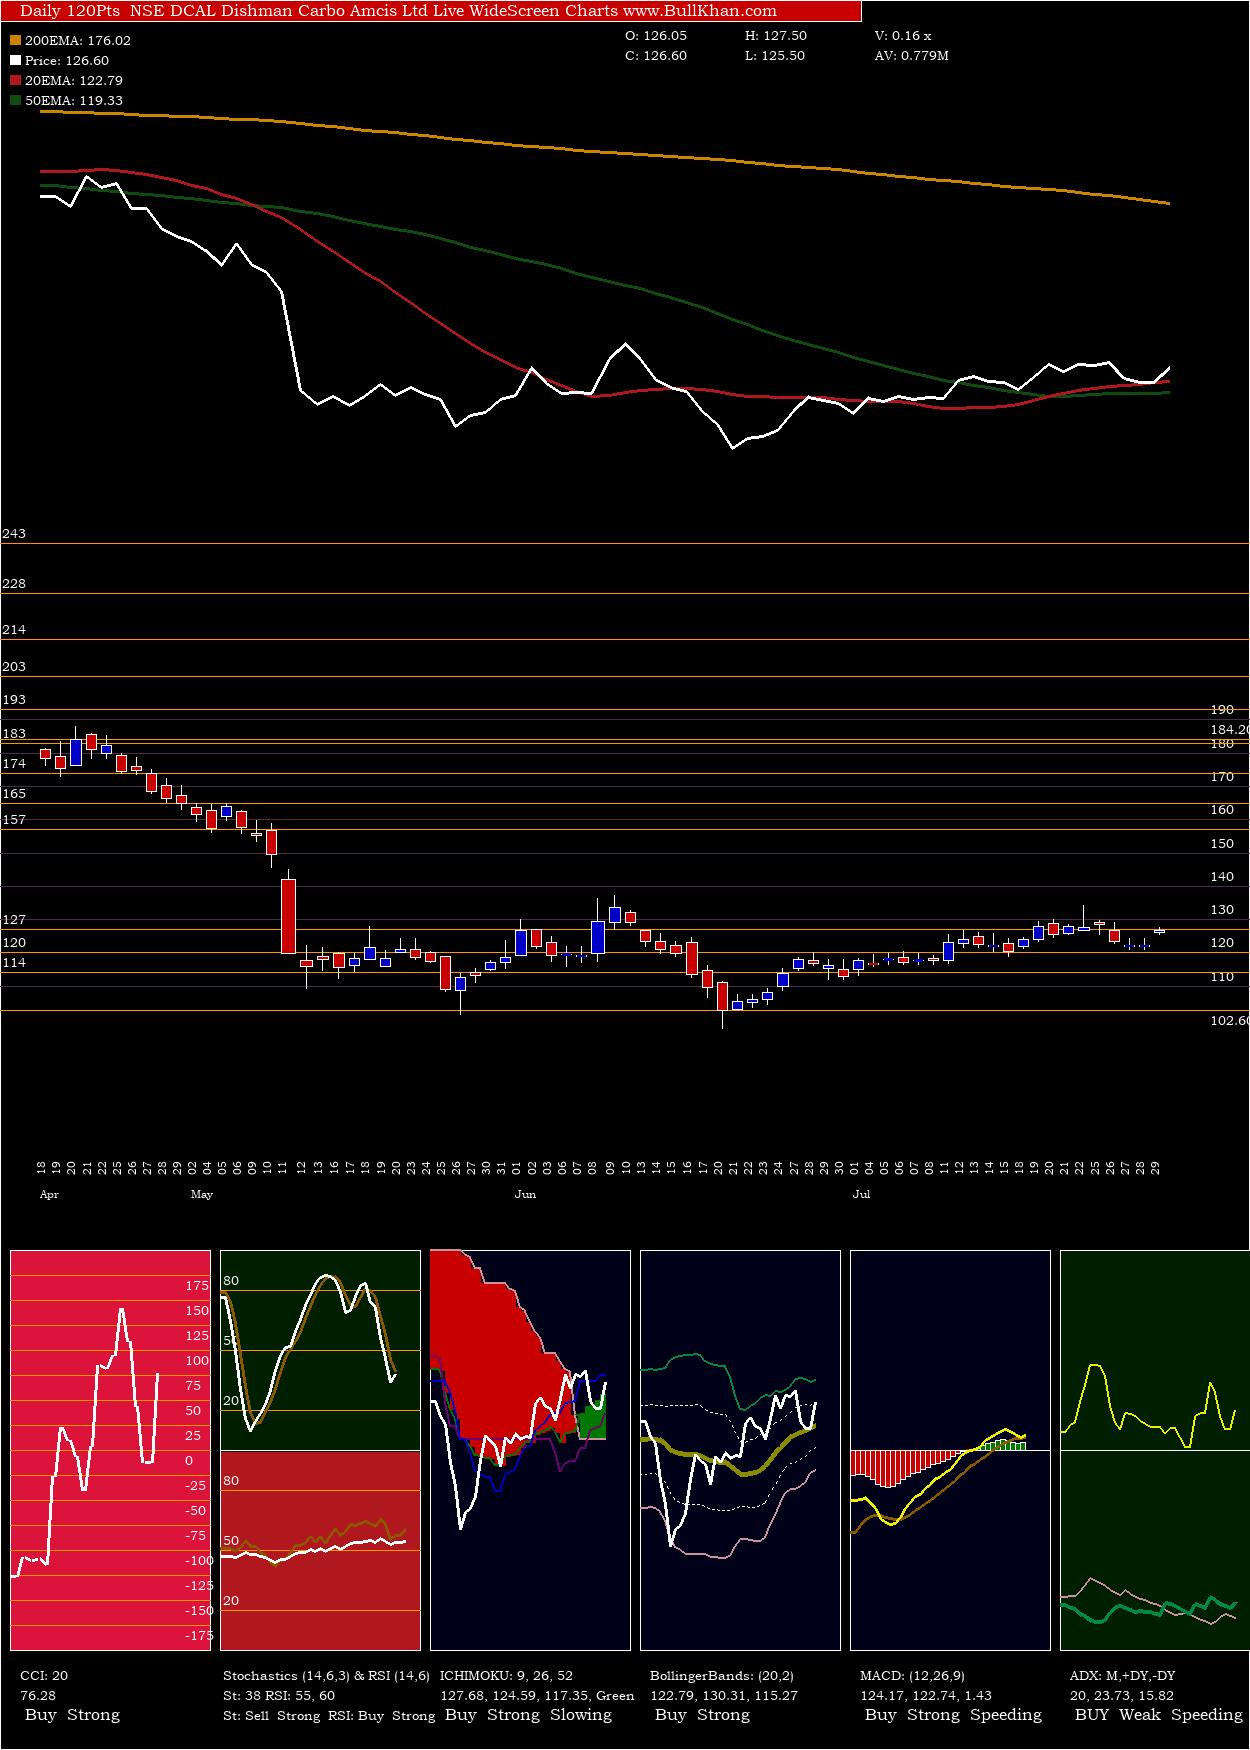 Dishman Carbo charts and indicators